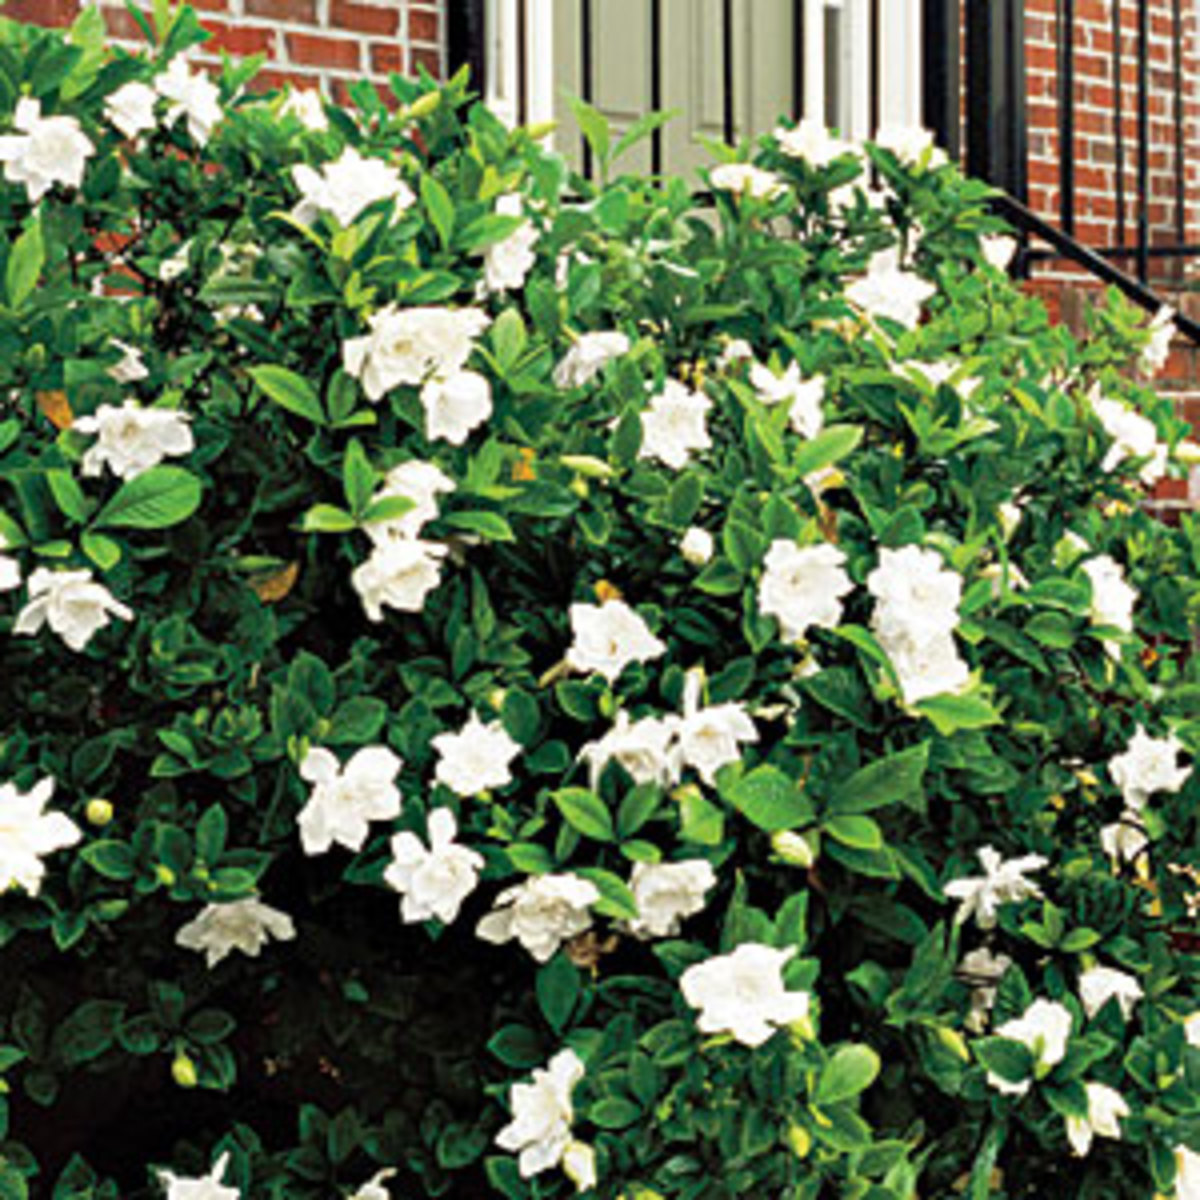 The gardenia bush or plant.